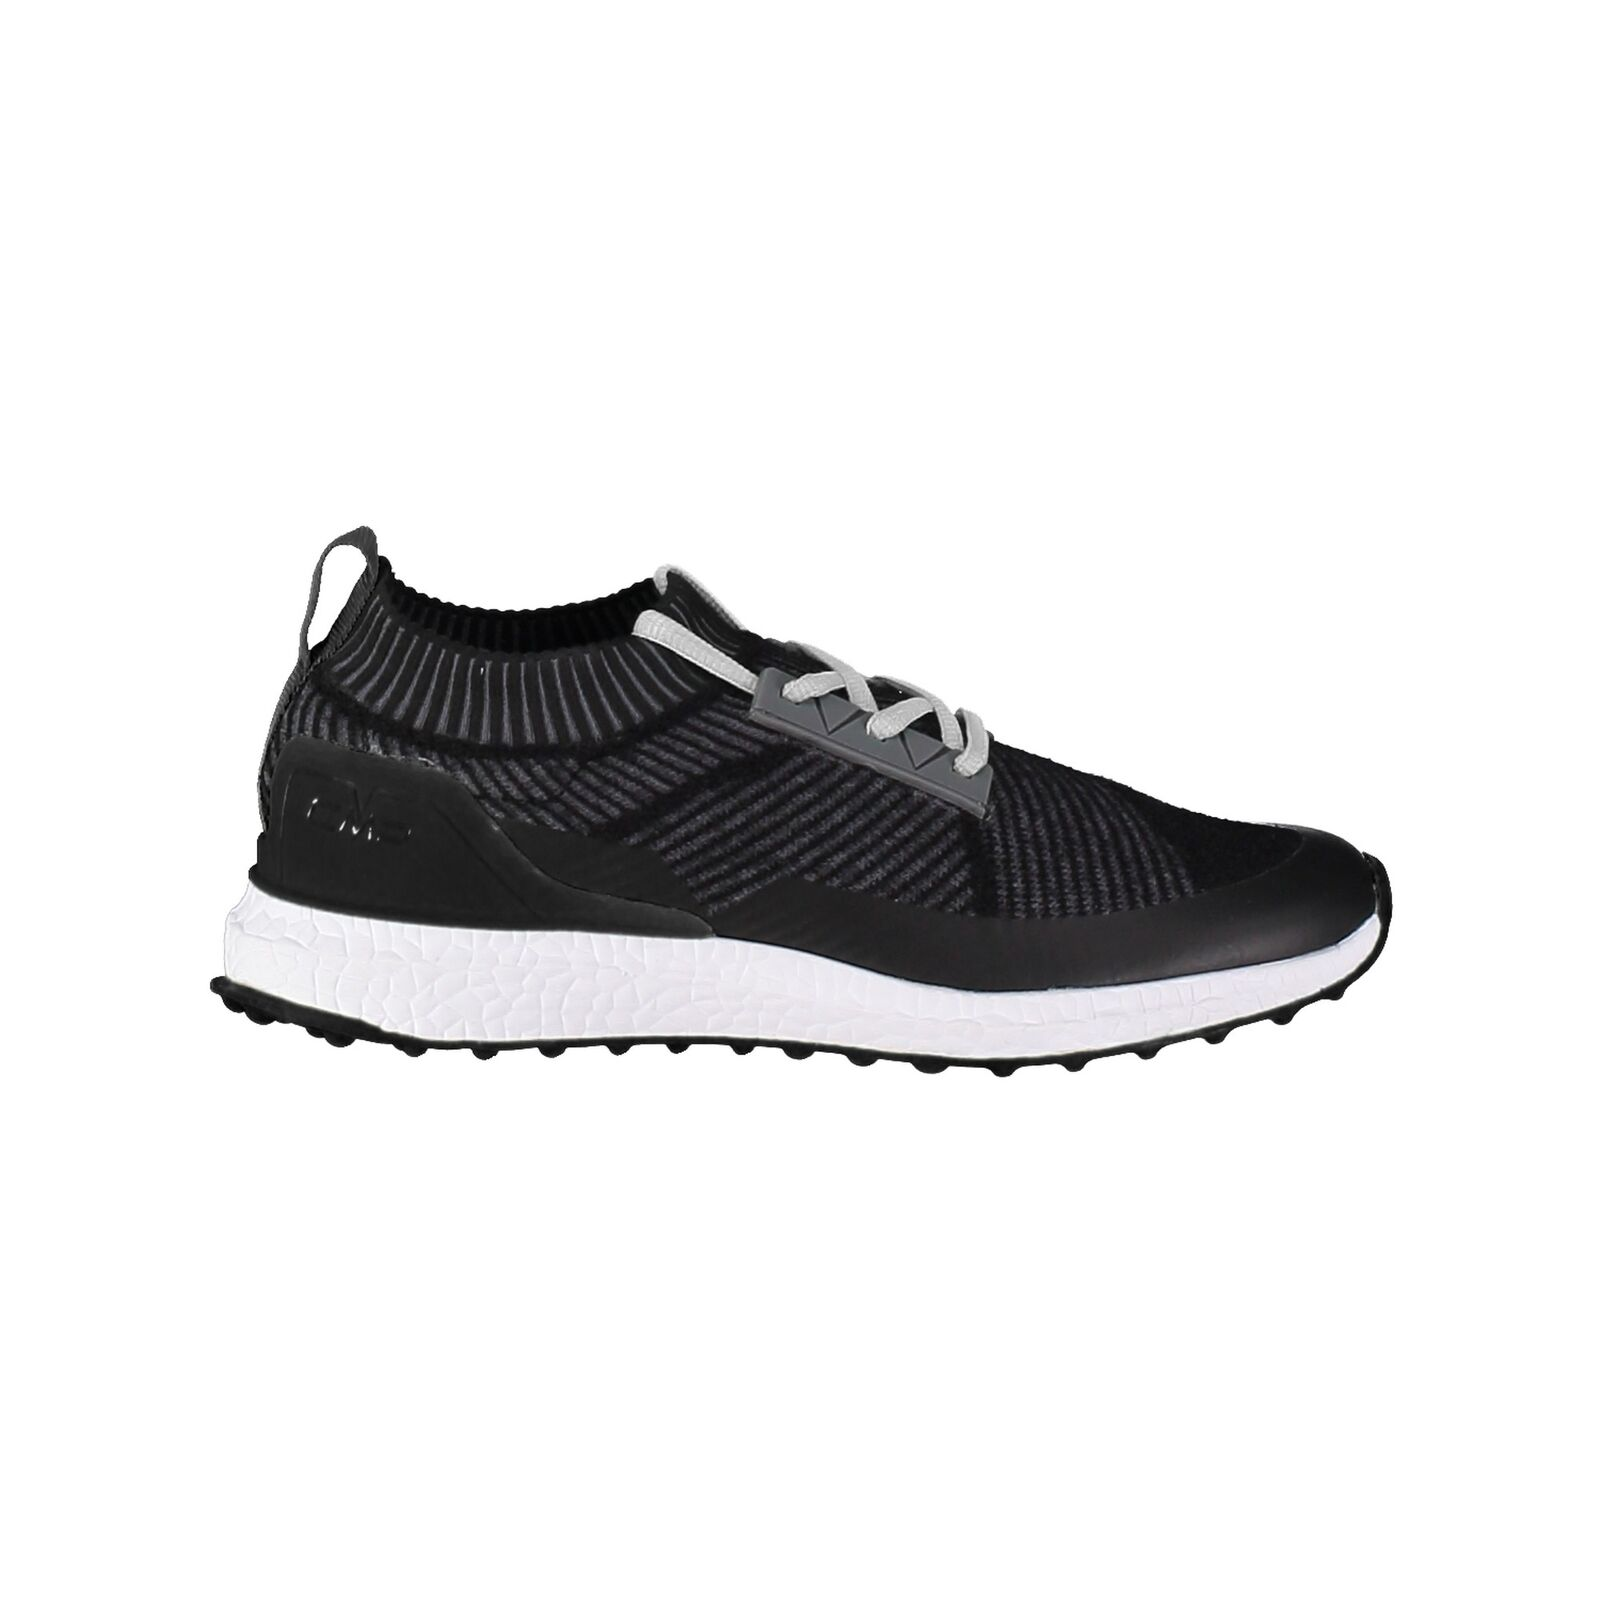 CMP Turnschuhe Sportschuhe NEMBUS  WOOL WMN LIFESTYLE SHOE black  there are more brands of high-quality goods